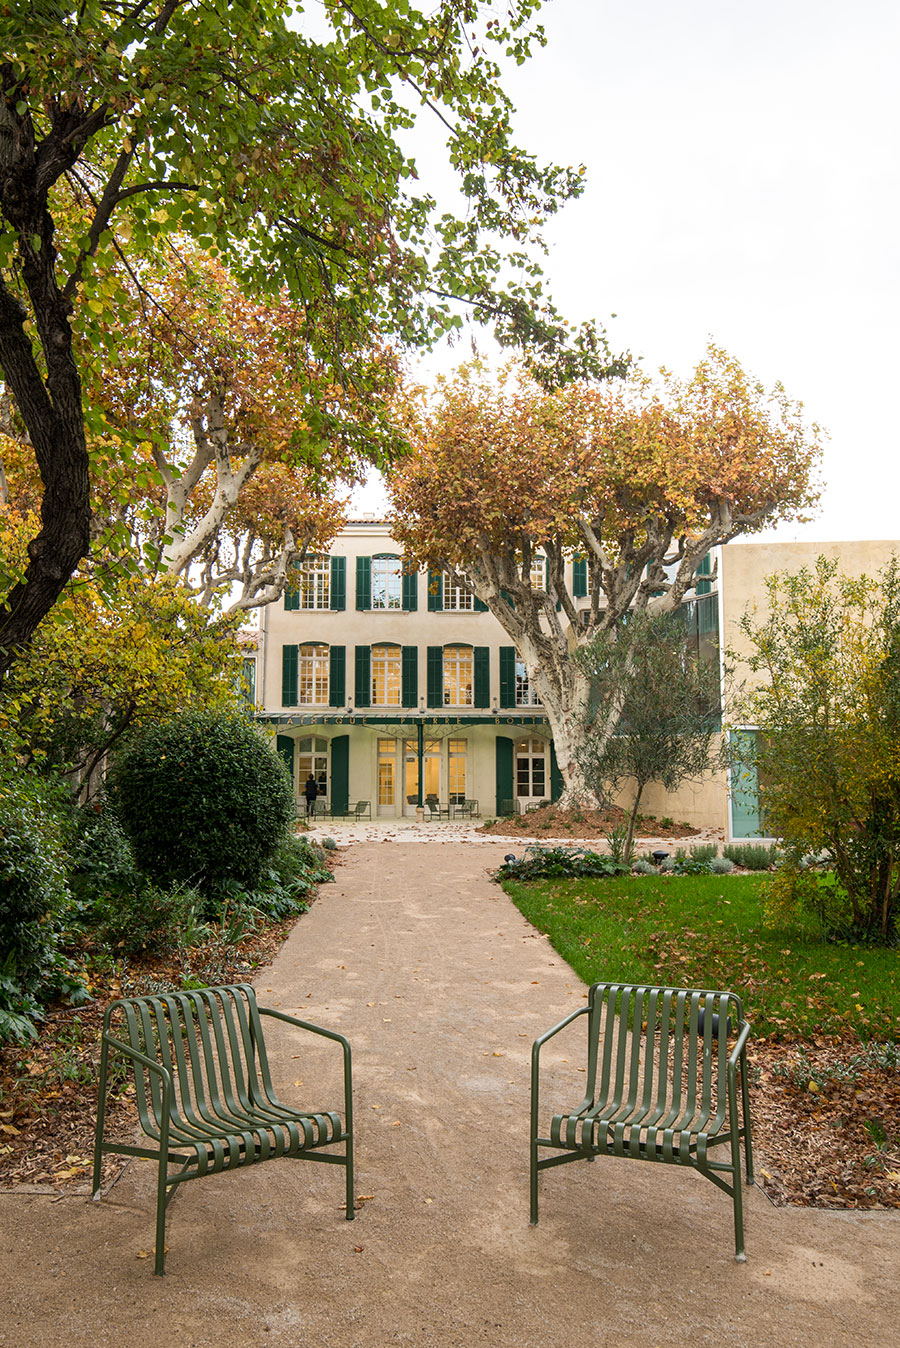 Mediatheque-pelissanne-photo-sandrine-massel-photographe-paca